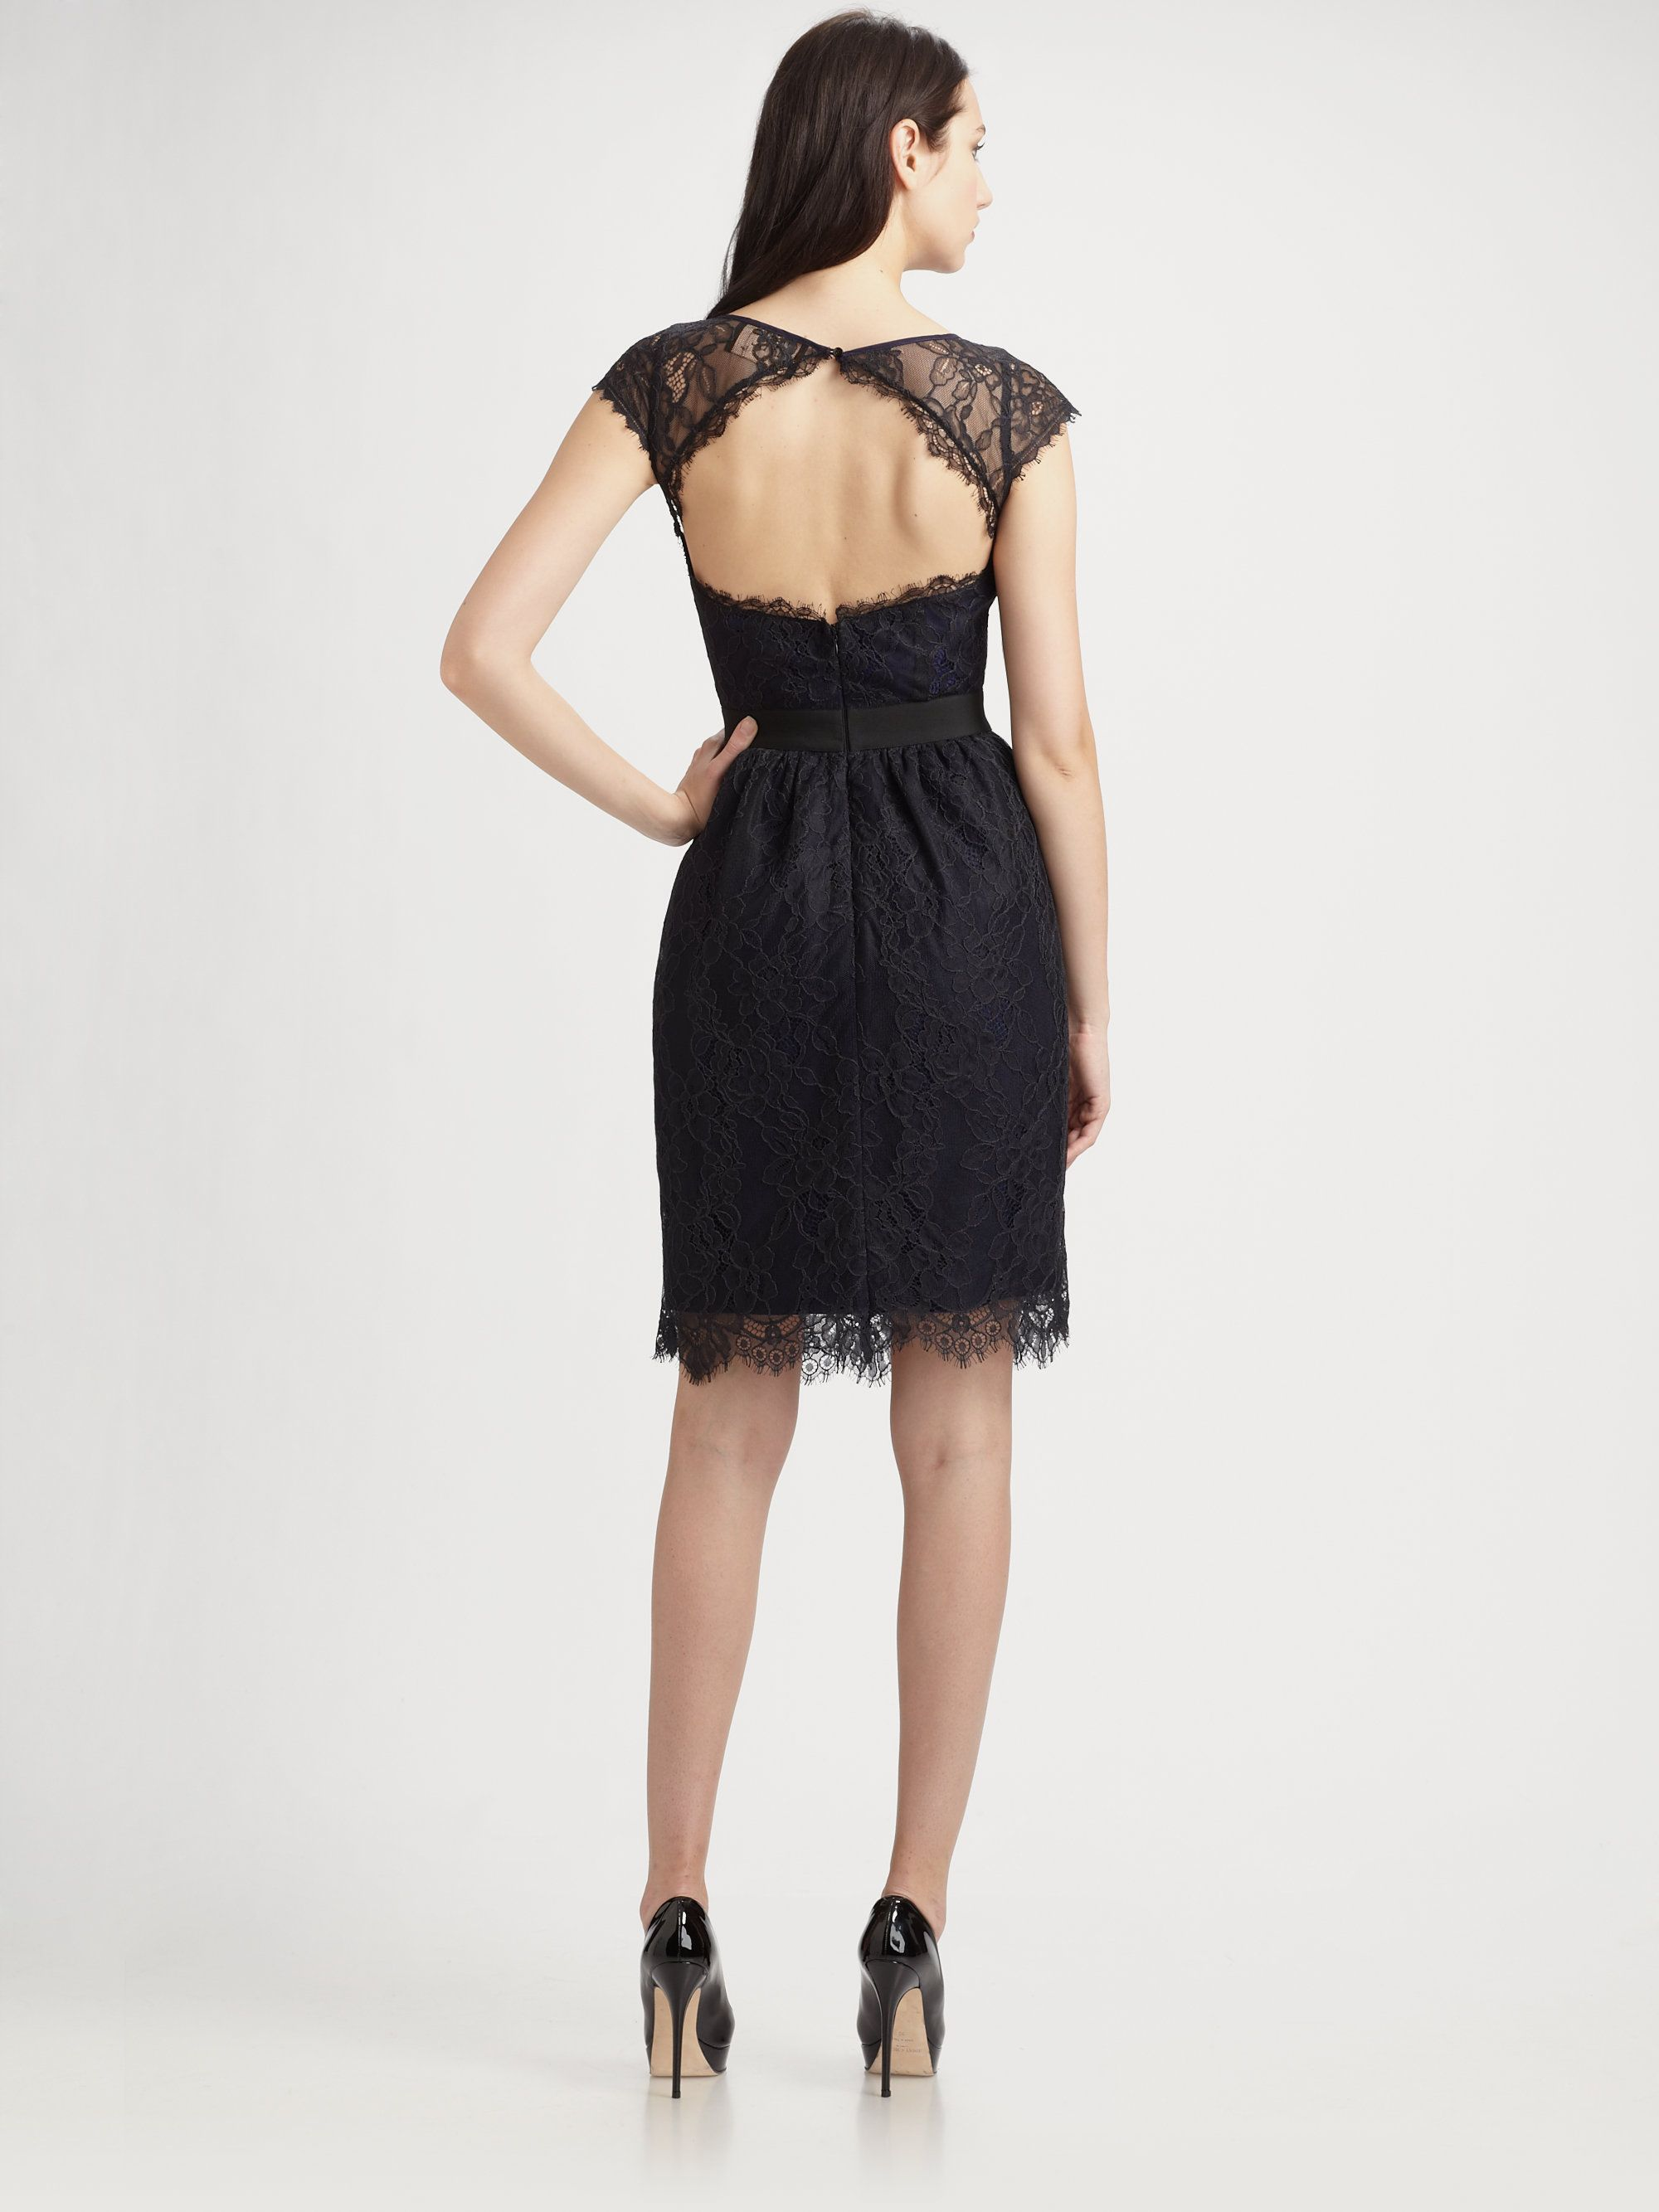 Ml monique lhuillier midnight lace cocktail dress